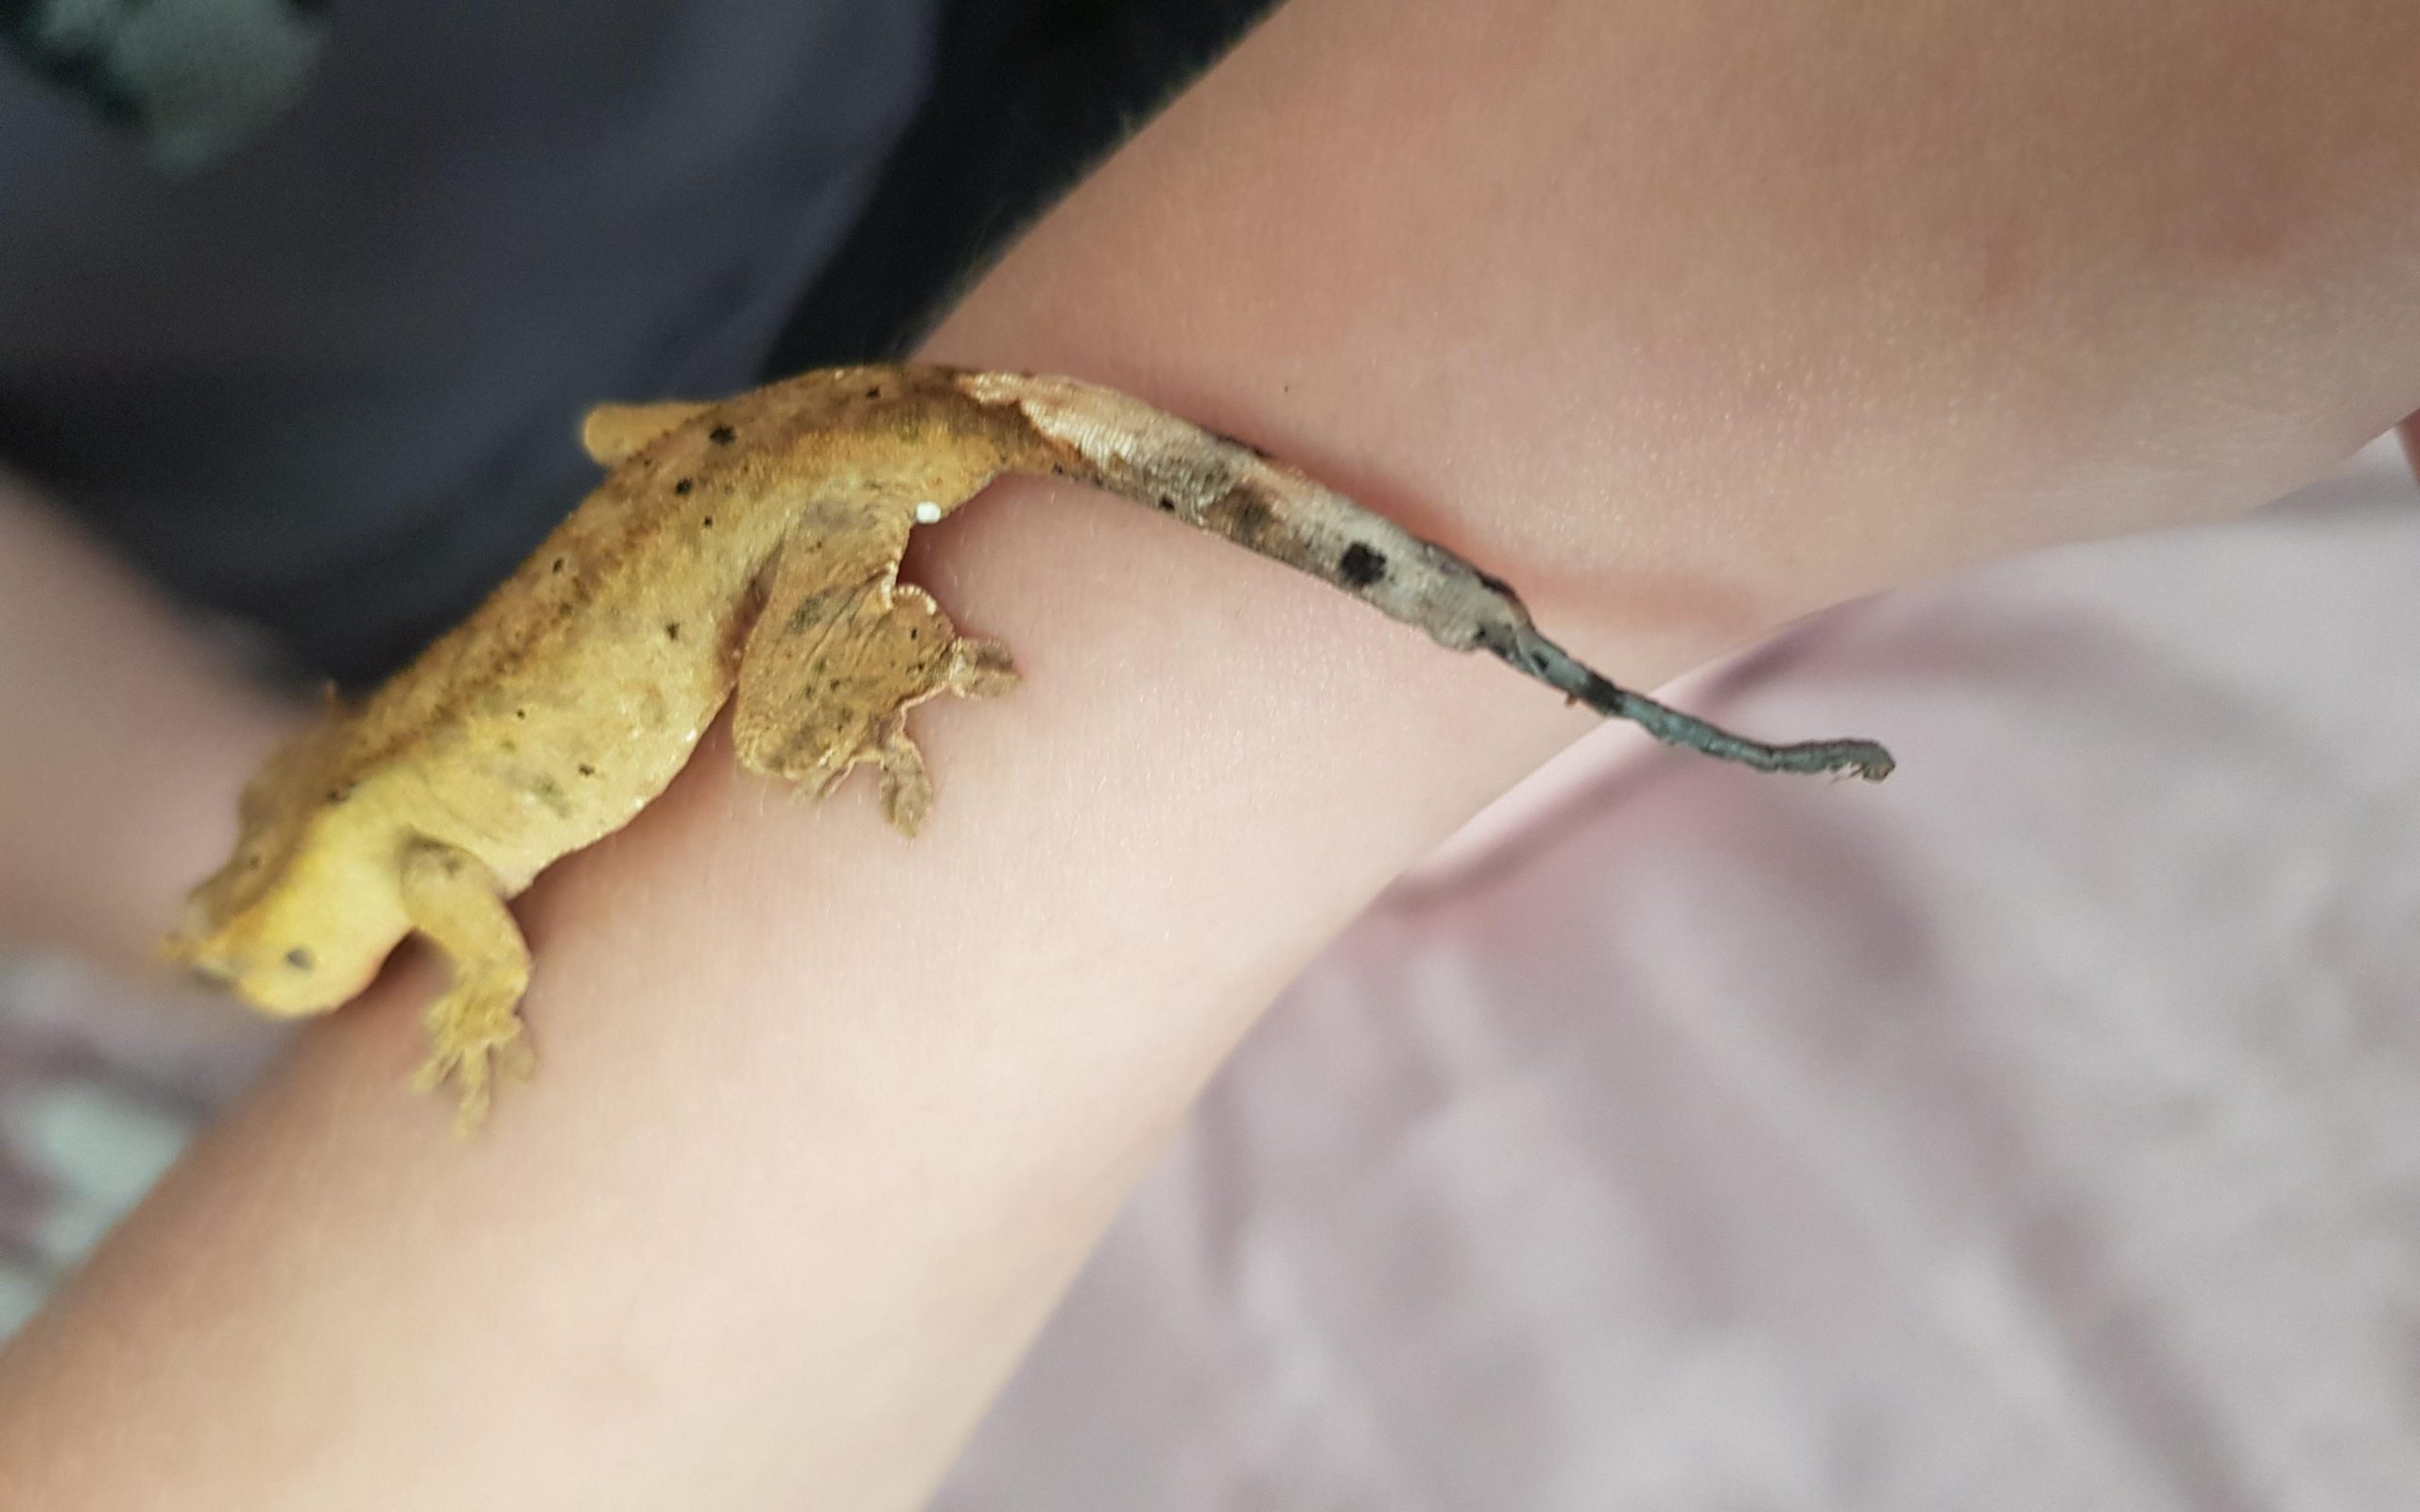 Crested Gecko Skin Infection